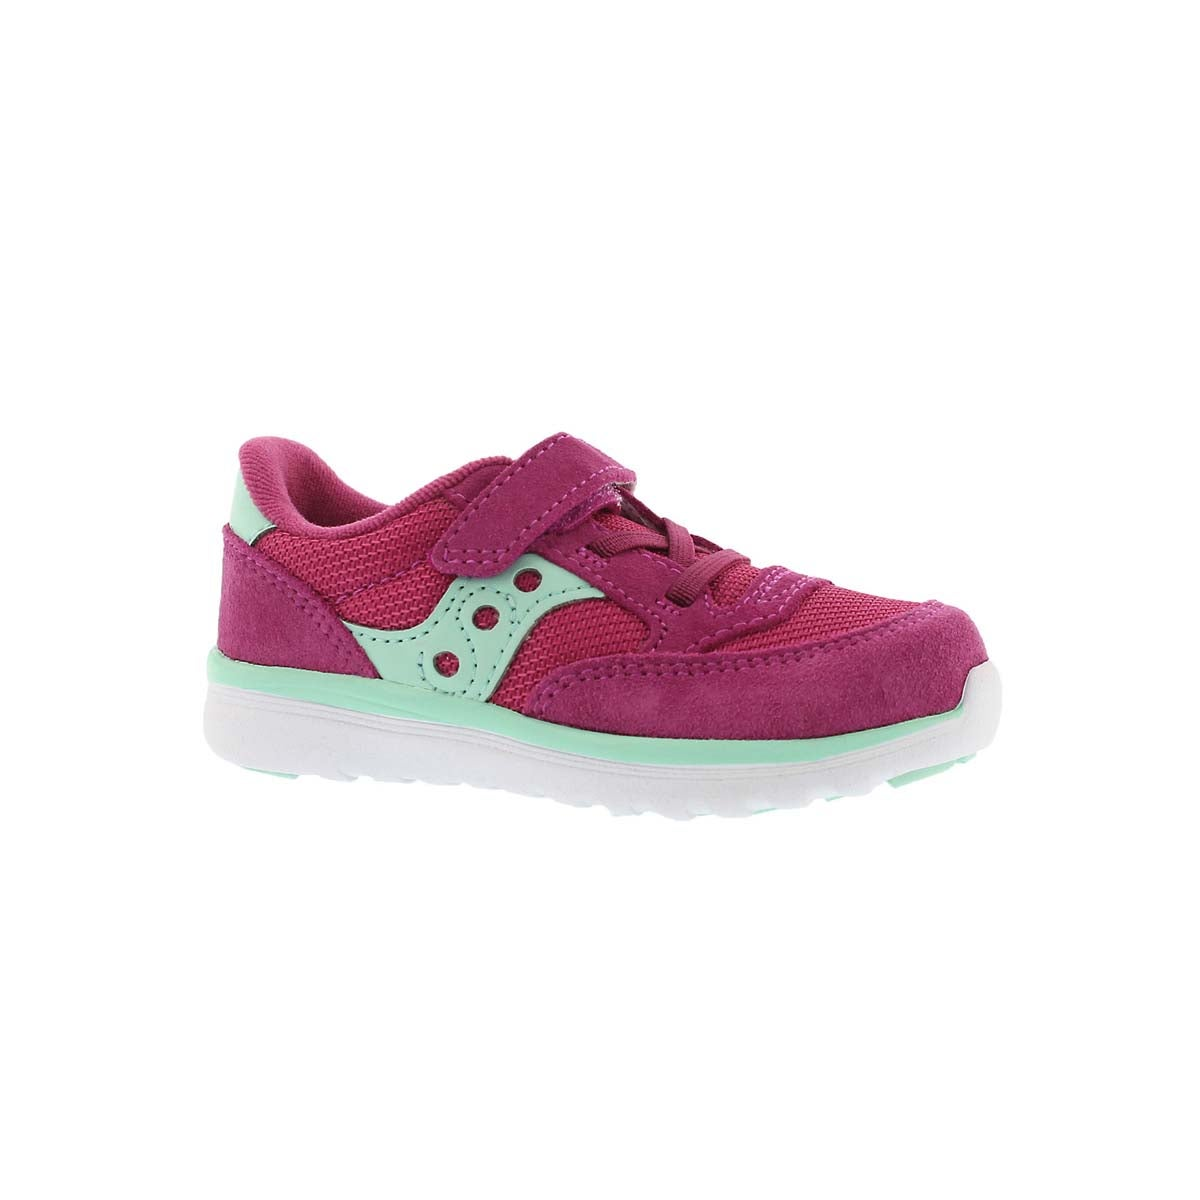 Infants' JAZZ LITE pink/turquoise sneakers - Wide